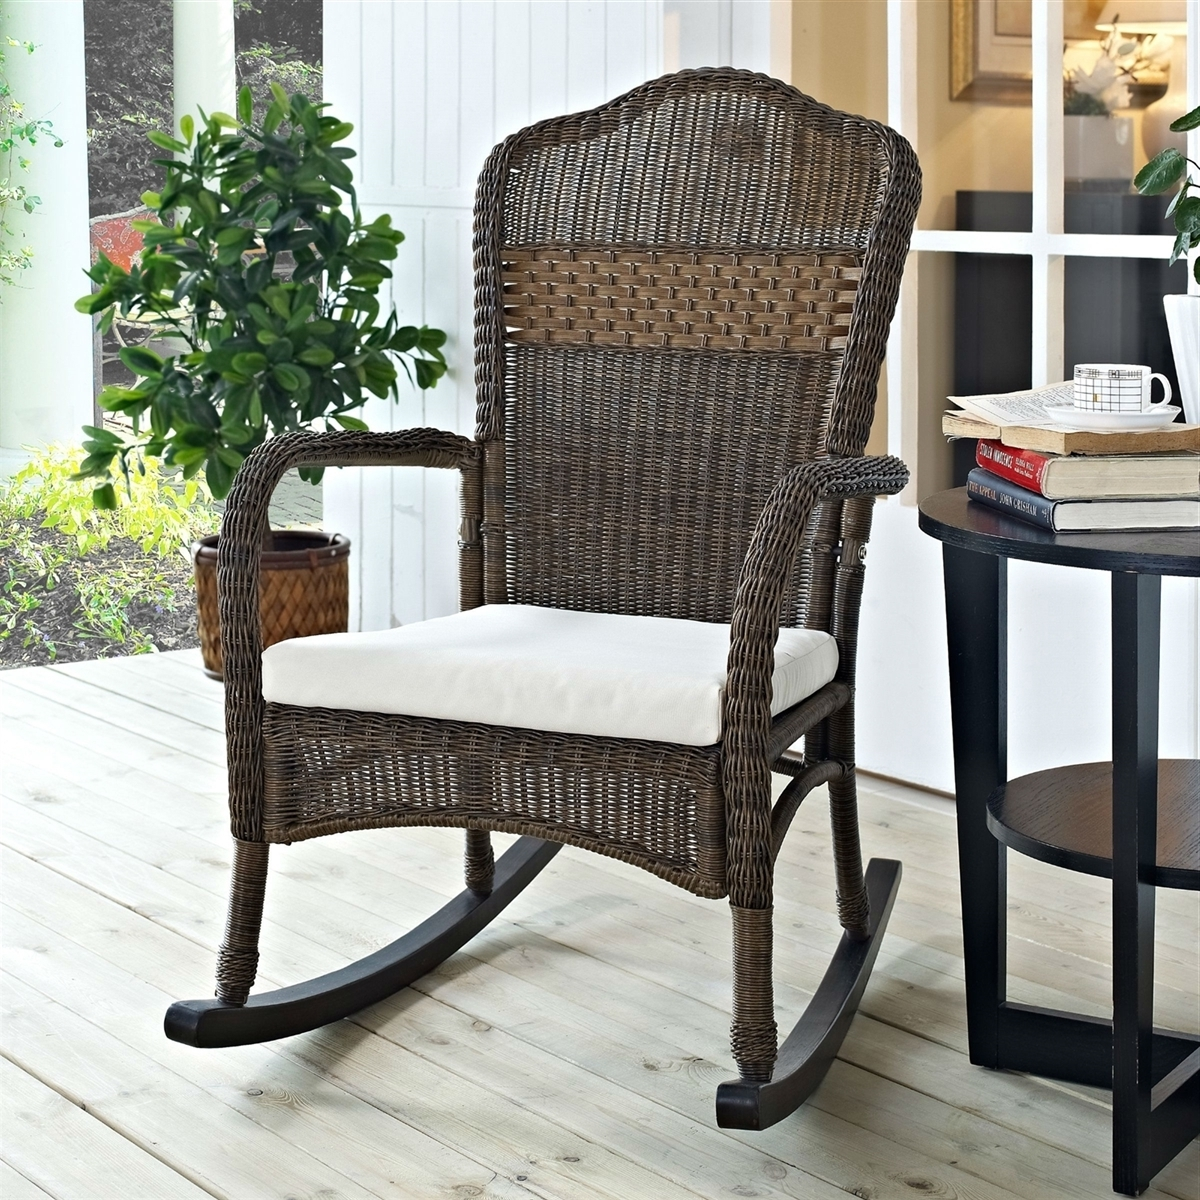 Wicker Patio Furniture Rocking Chair Mocha With Beige Cushion For Most Current Resin Wicker Patio Rocking Chairs (View 20 of 20)